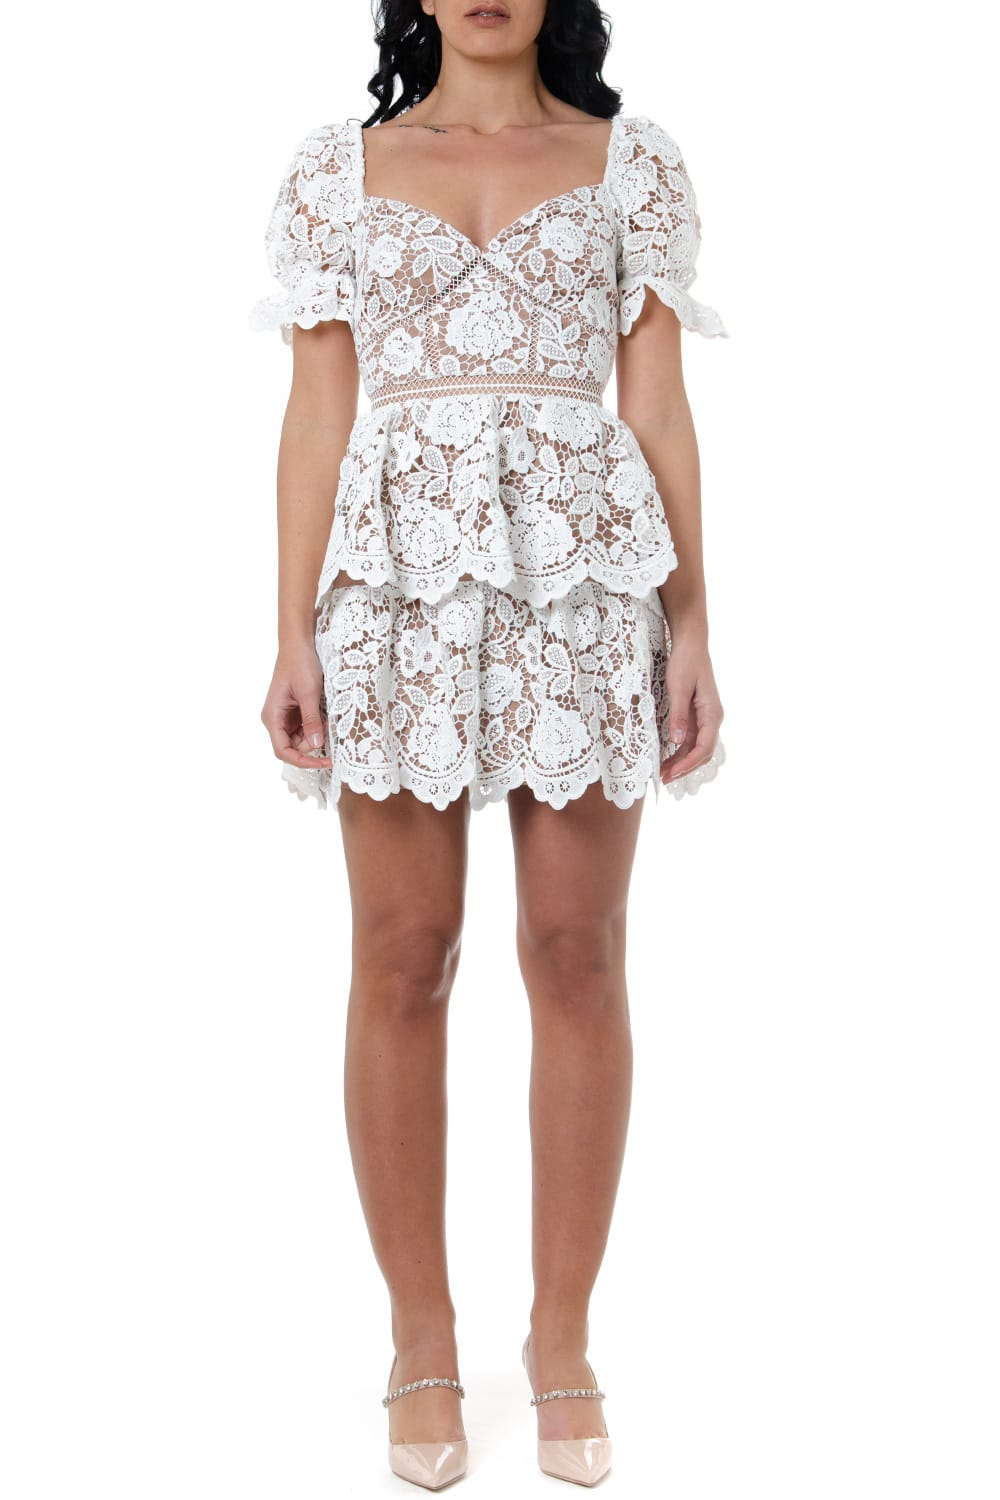 Buy self-portrait White Lace Dress online, shop self-portrait with free shipping